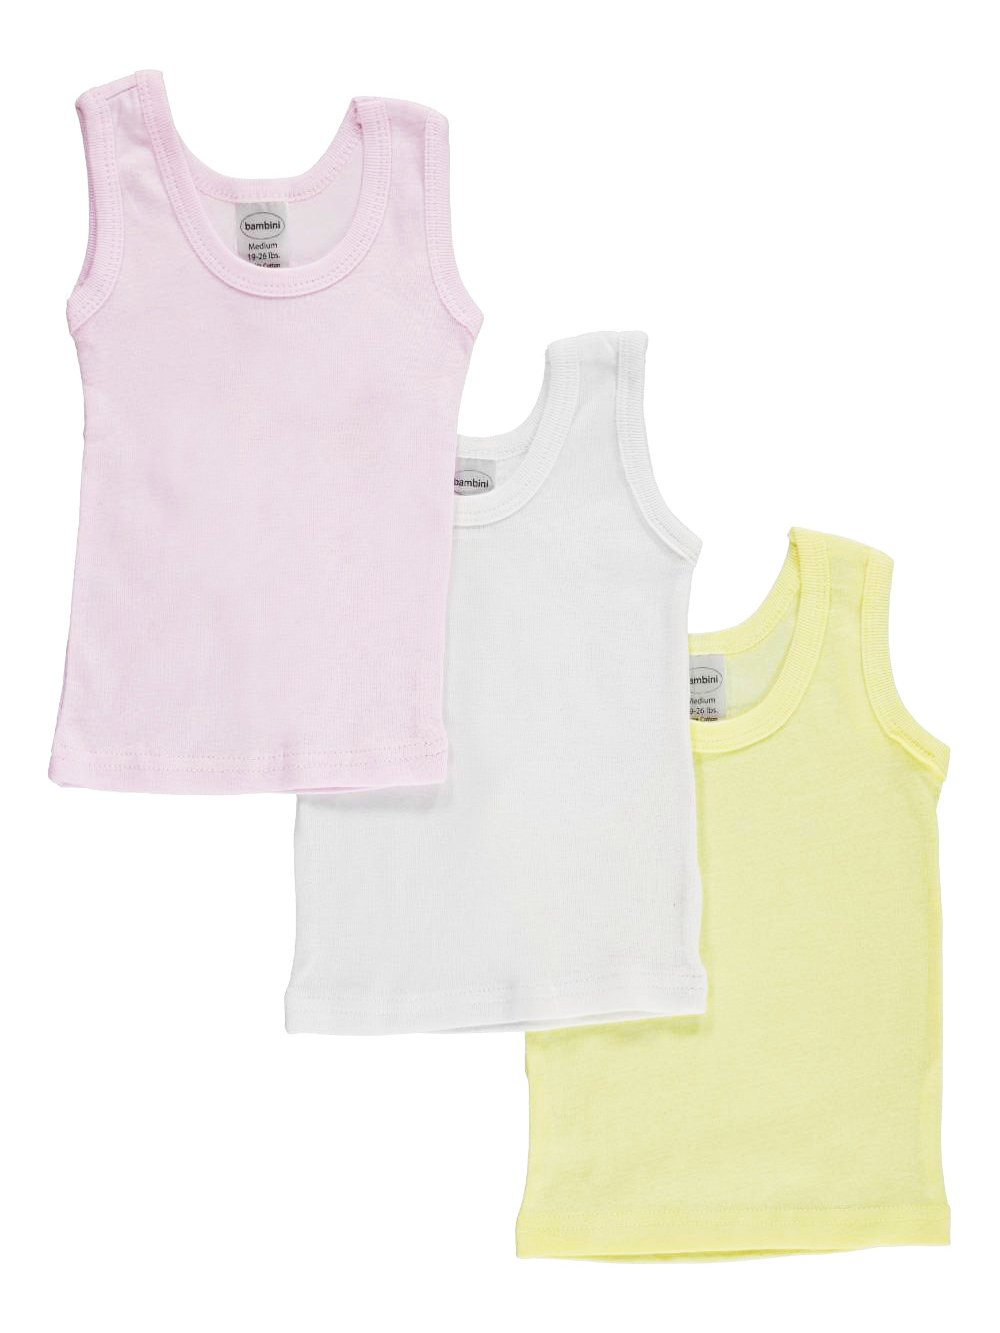 Bambini Baby Girls' 3-Pack Sleeveless T-Shirts